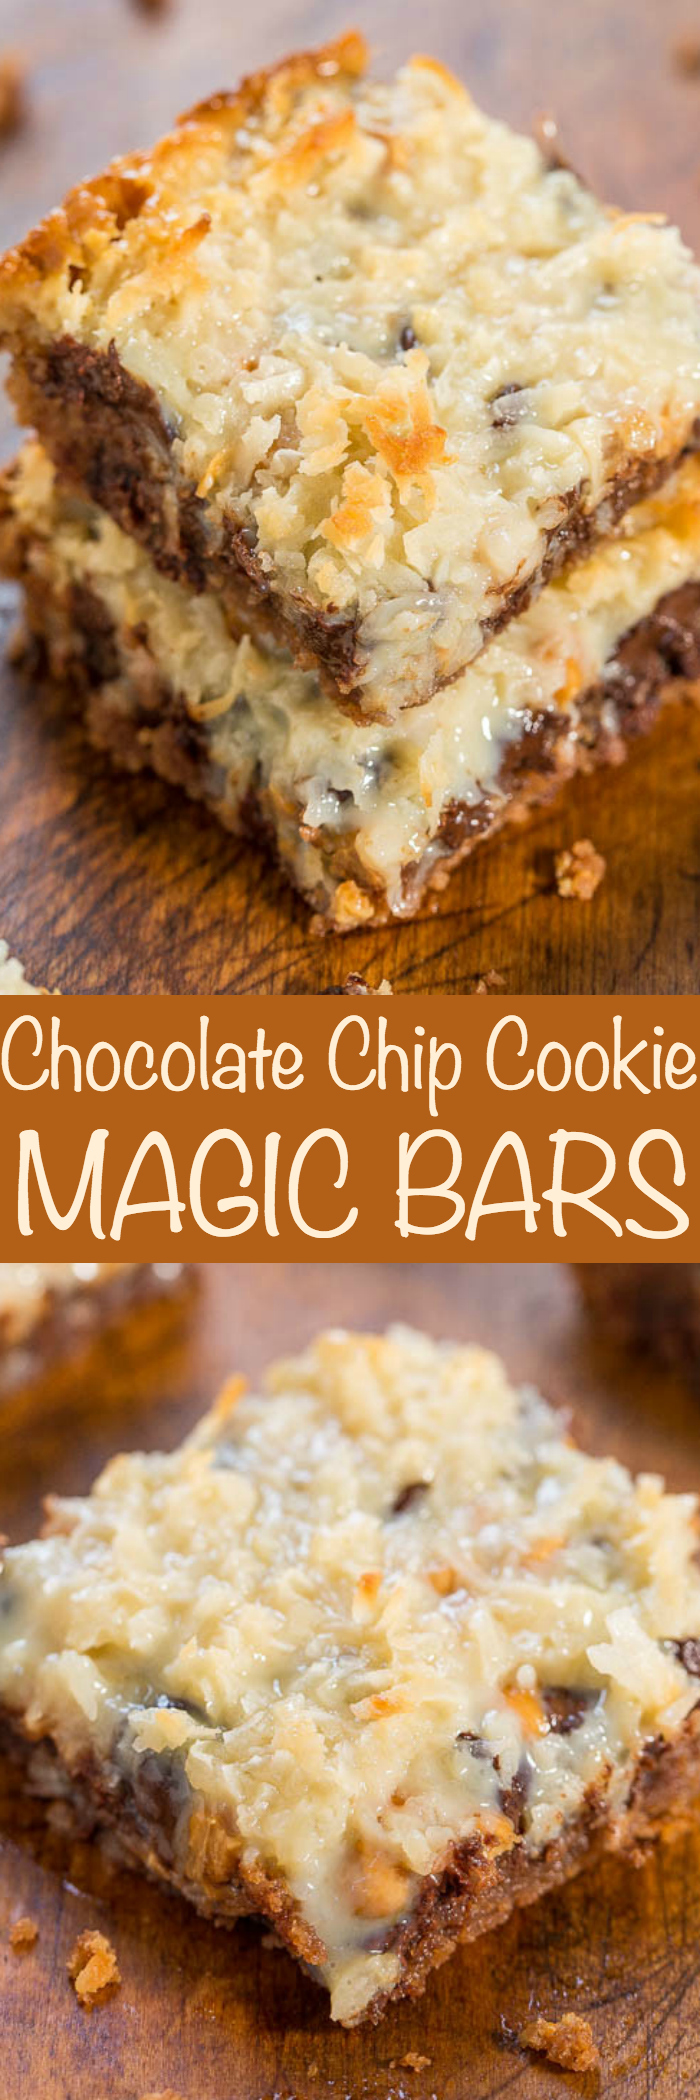 Chocolate Chip Cookie Magic Bars - The classic recipe made even better with a chocolate chip cookie crust!! One bowl, no mixer, fast and easy! Soft, chewy, gooey and SO GOOD!!